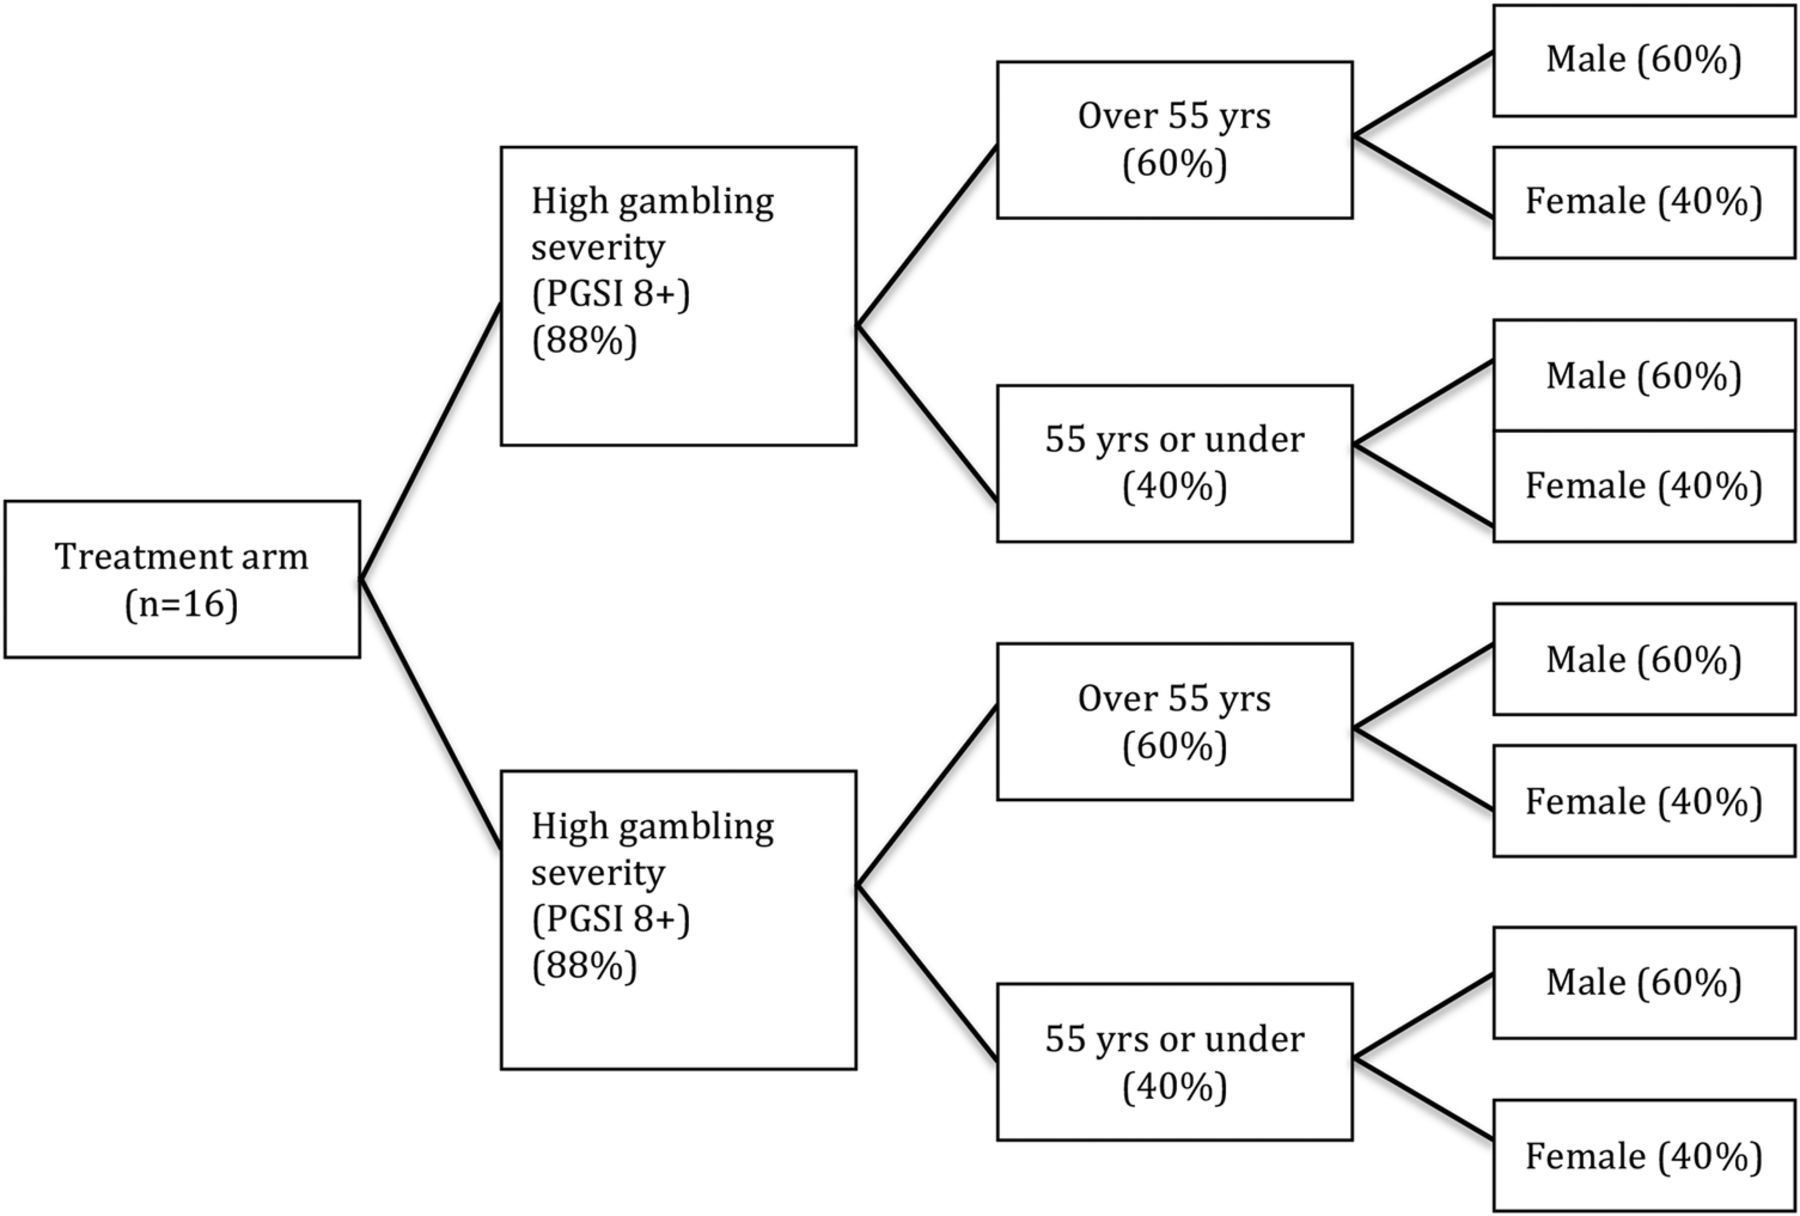 an analysis of compulsive gambling Full-text paper (pdf): pathological gambling and obsessive-compulsive disorder: towards a spectrum of disorders of volition.